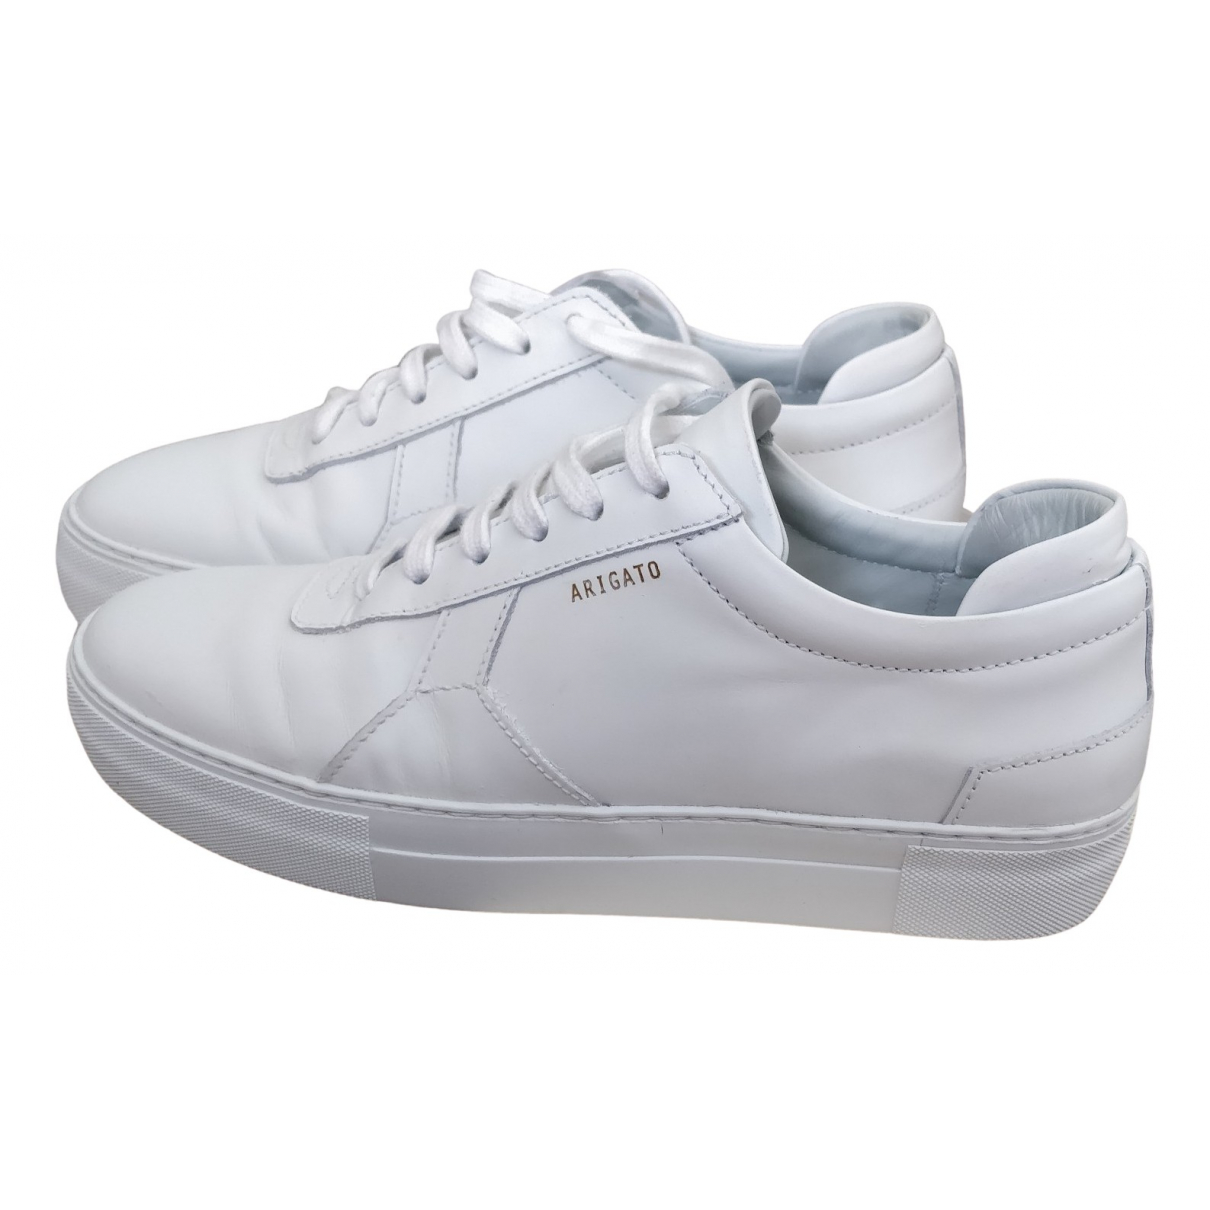 Axel Arigato \N White Leather Trainers for Women 41 EU